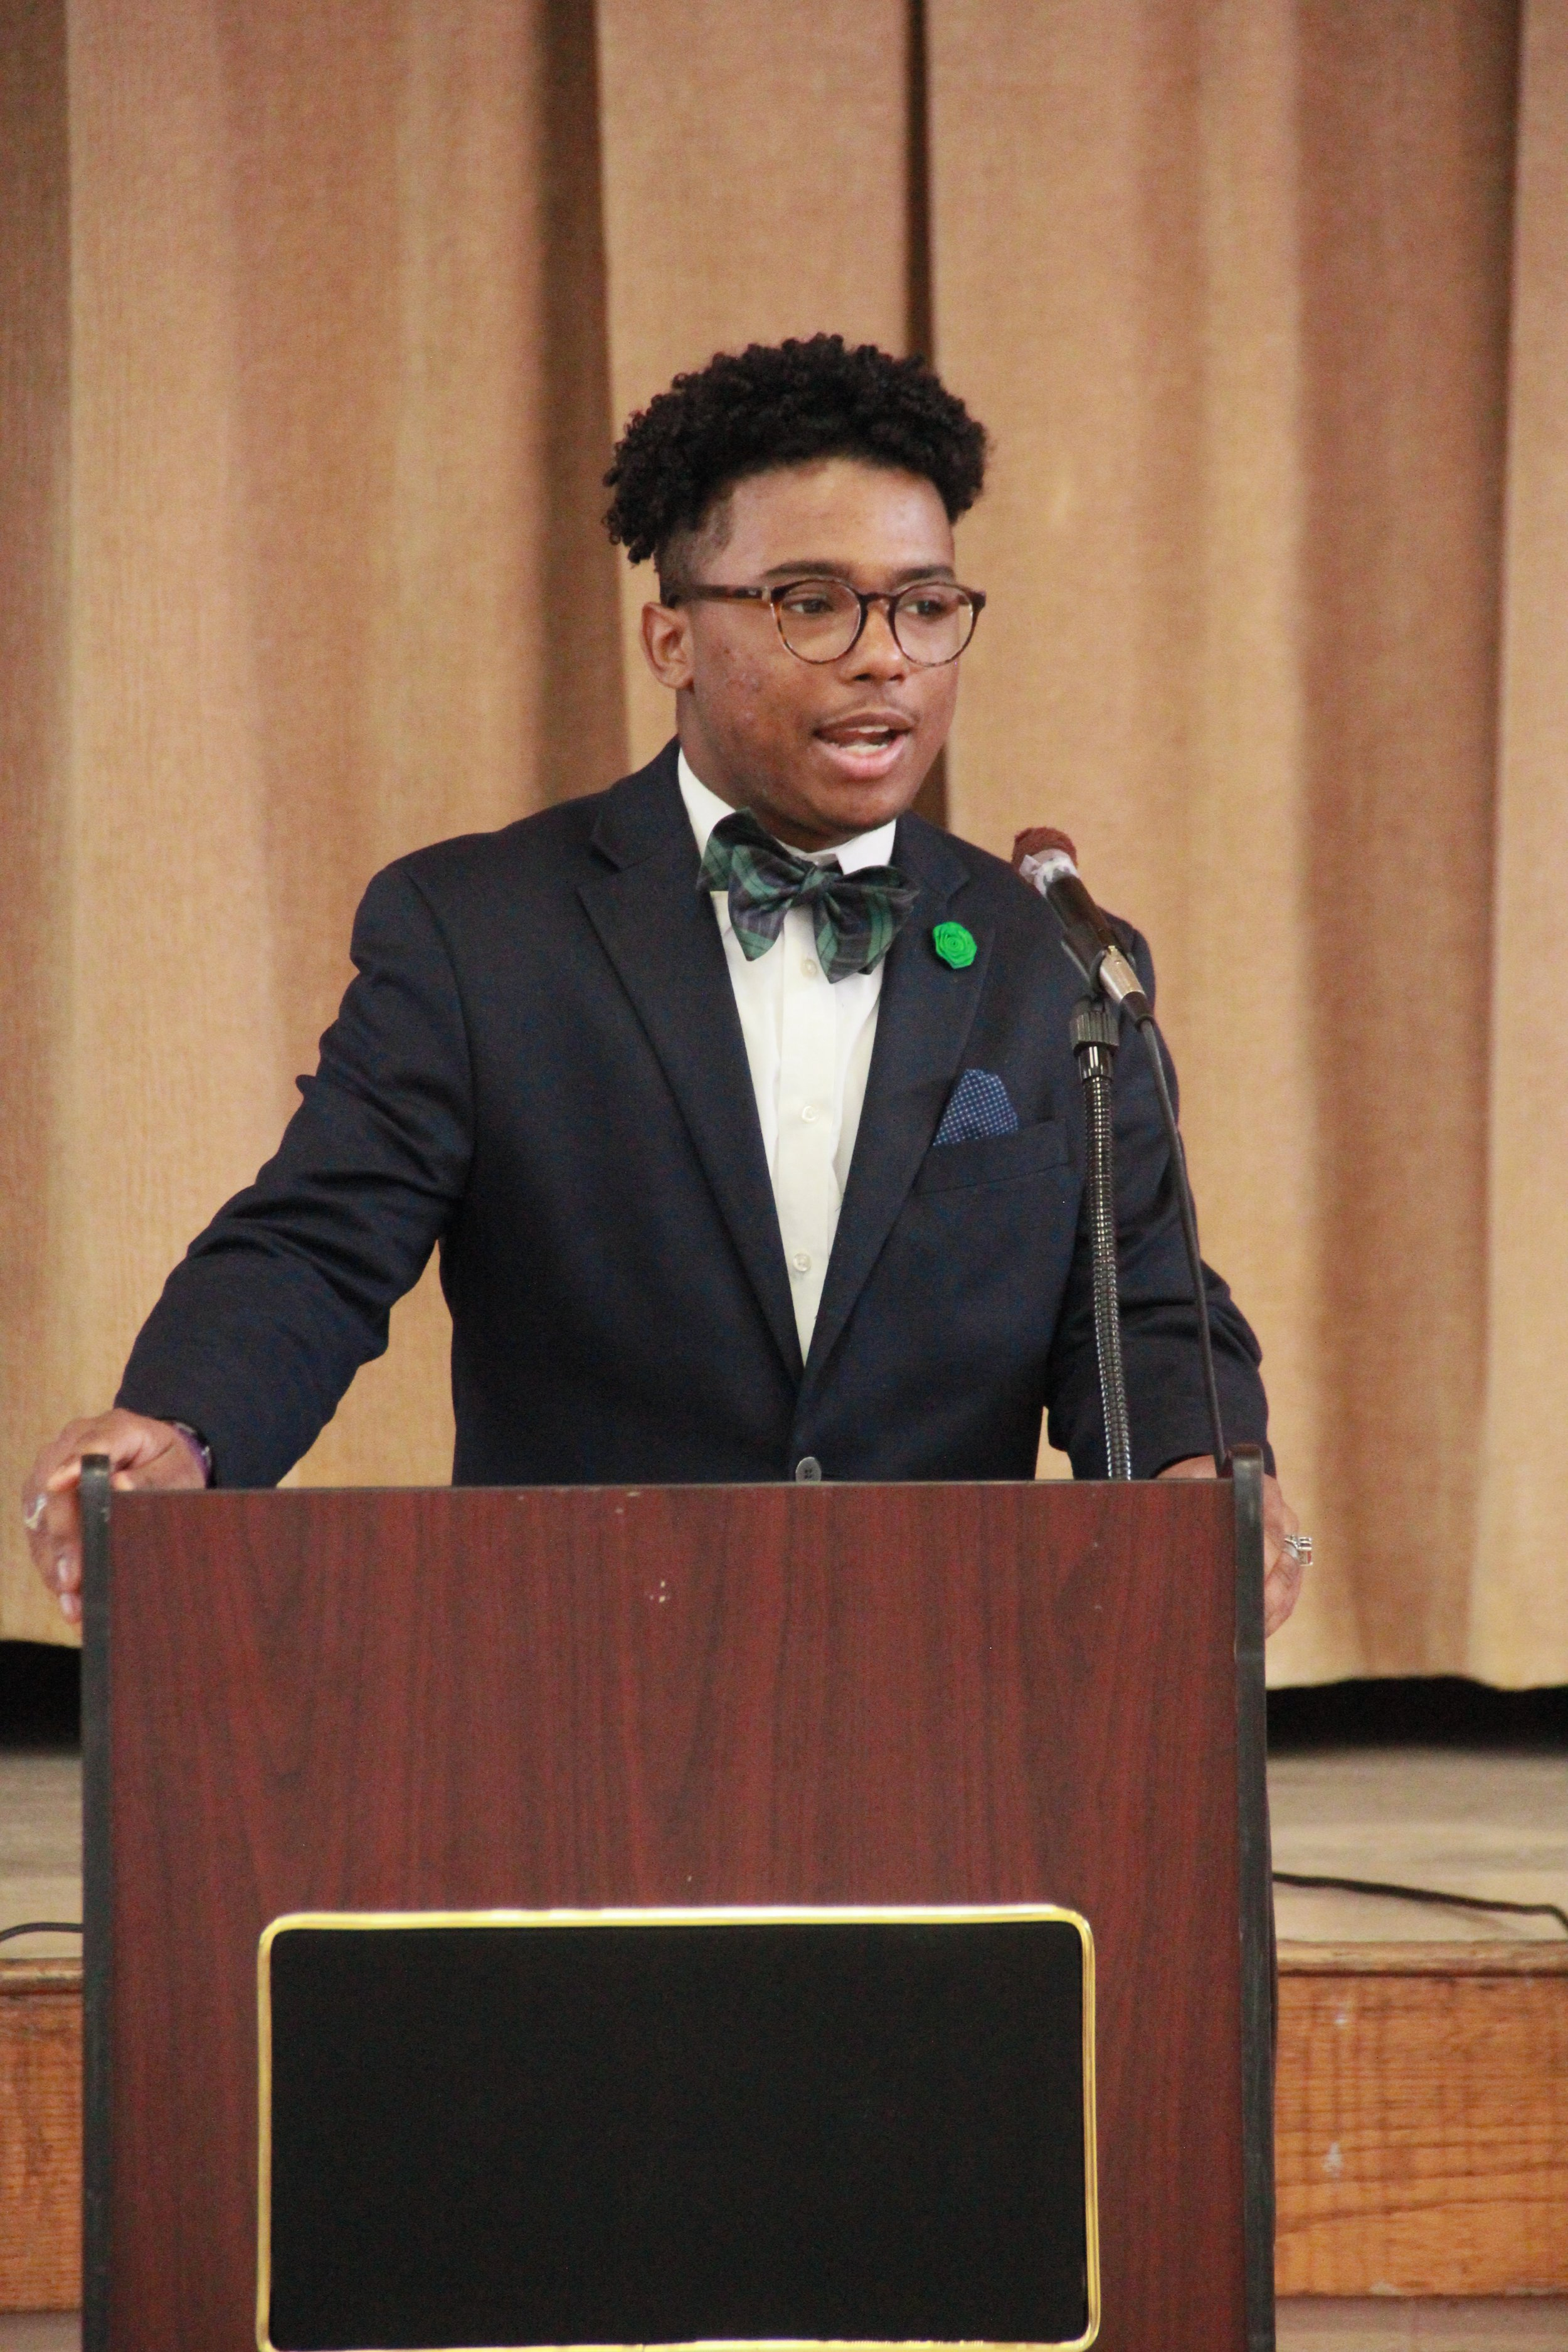 This is Mr. Patrick Henderson, of Lake Providence, LA. Mr. Henderson, was chosen as the 2nd place JHSFund Scholarship recipient, at the annual program in May, 2018. He is a freshman at Alcorn State University.